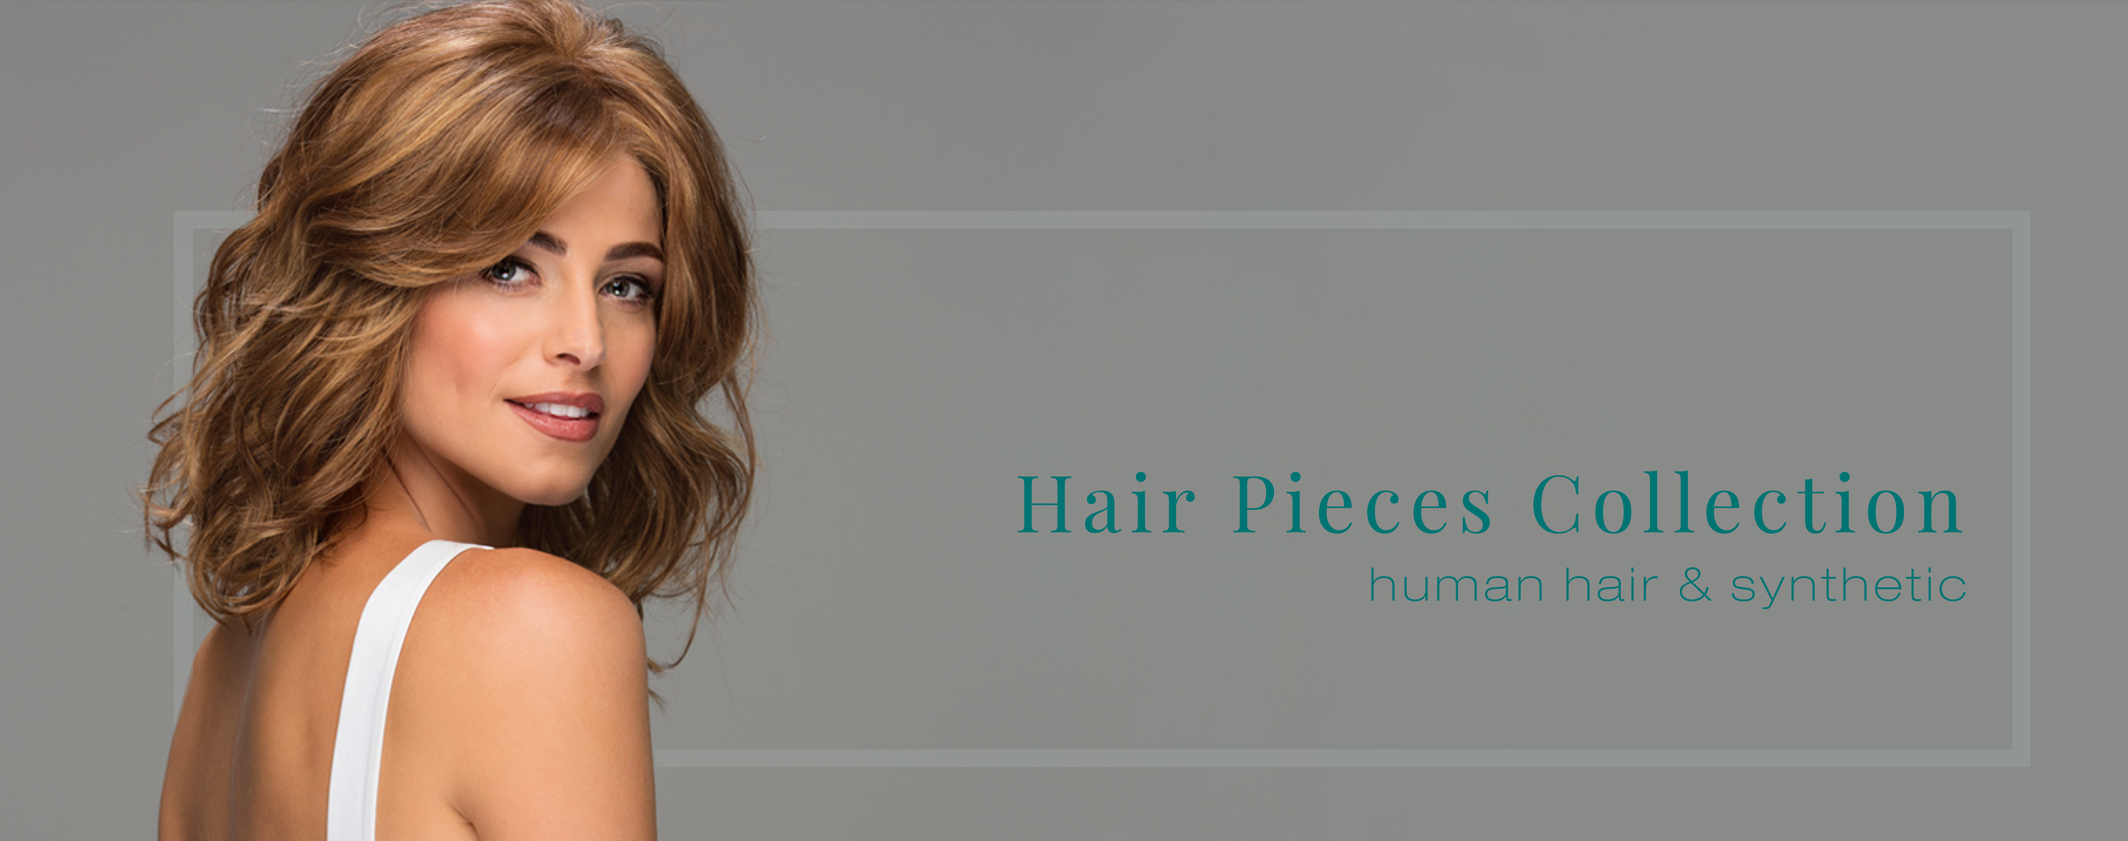 Hair Pieces Collection